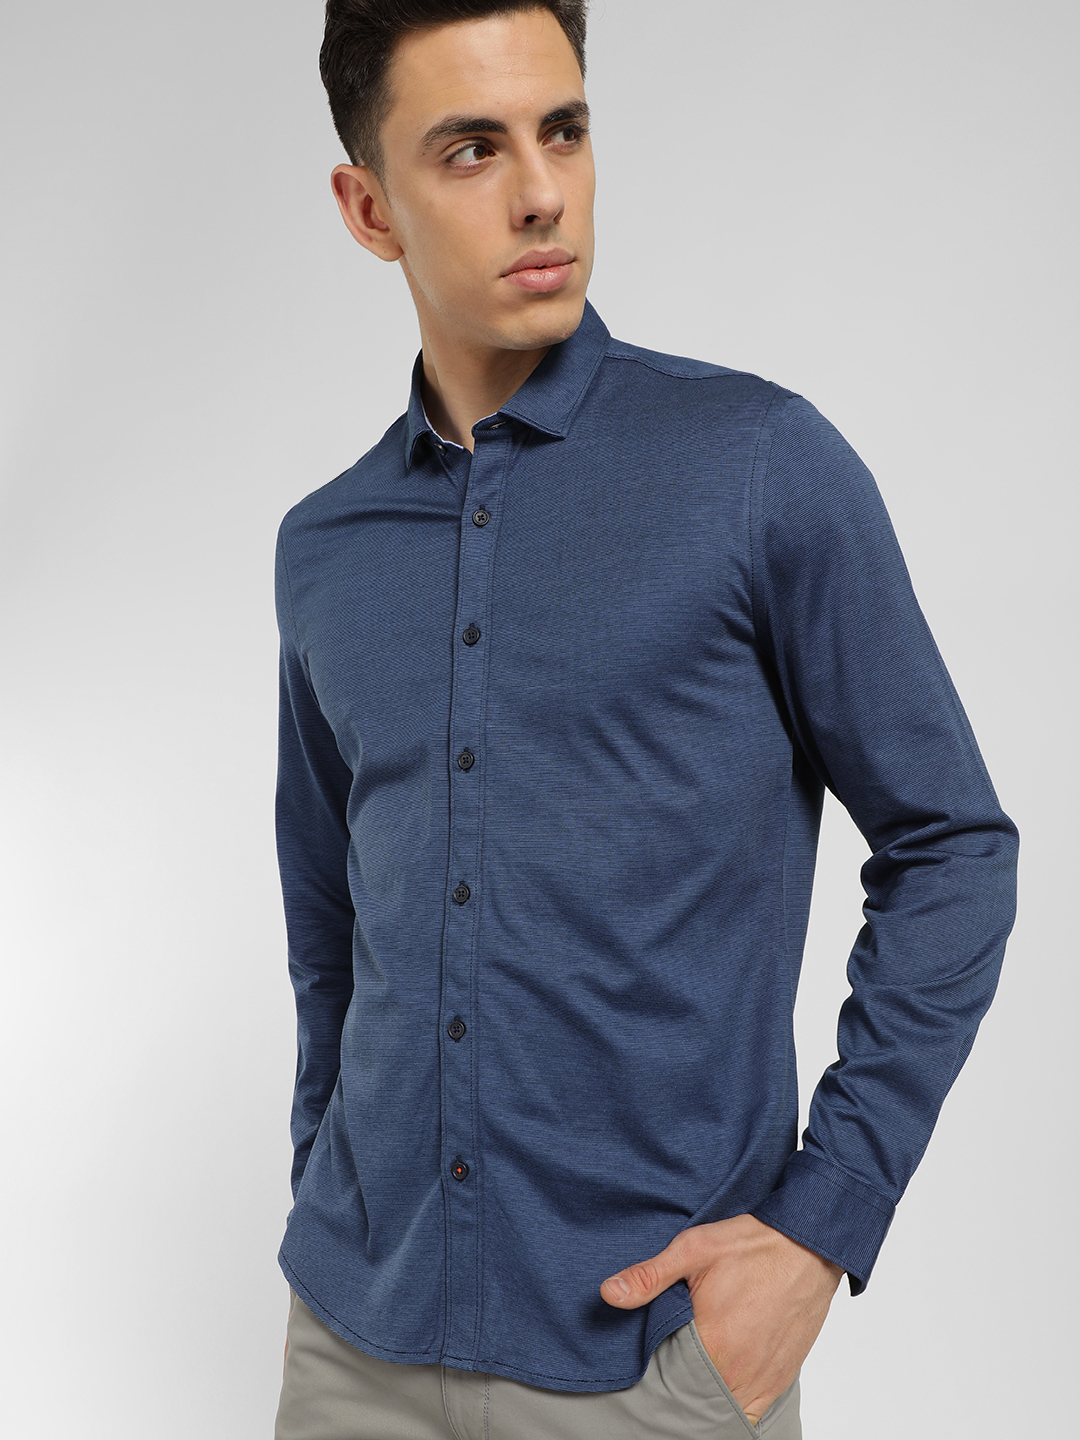 SCULLERS Blue Pinstripe Slim Fit Shirt 1